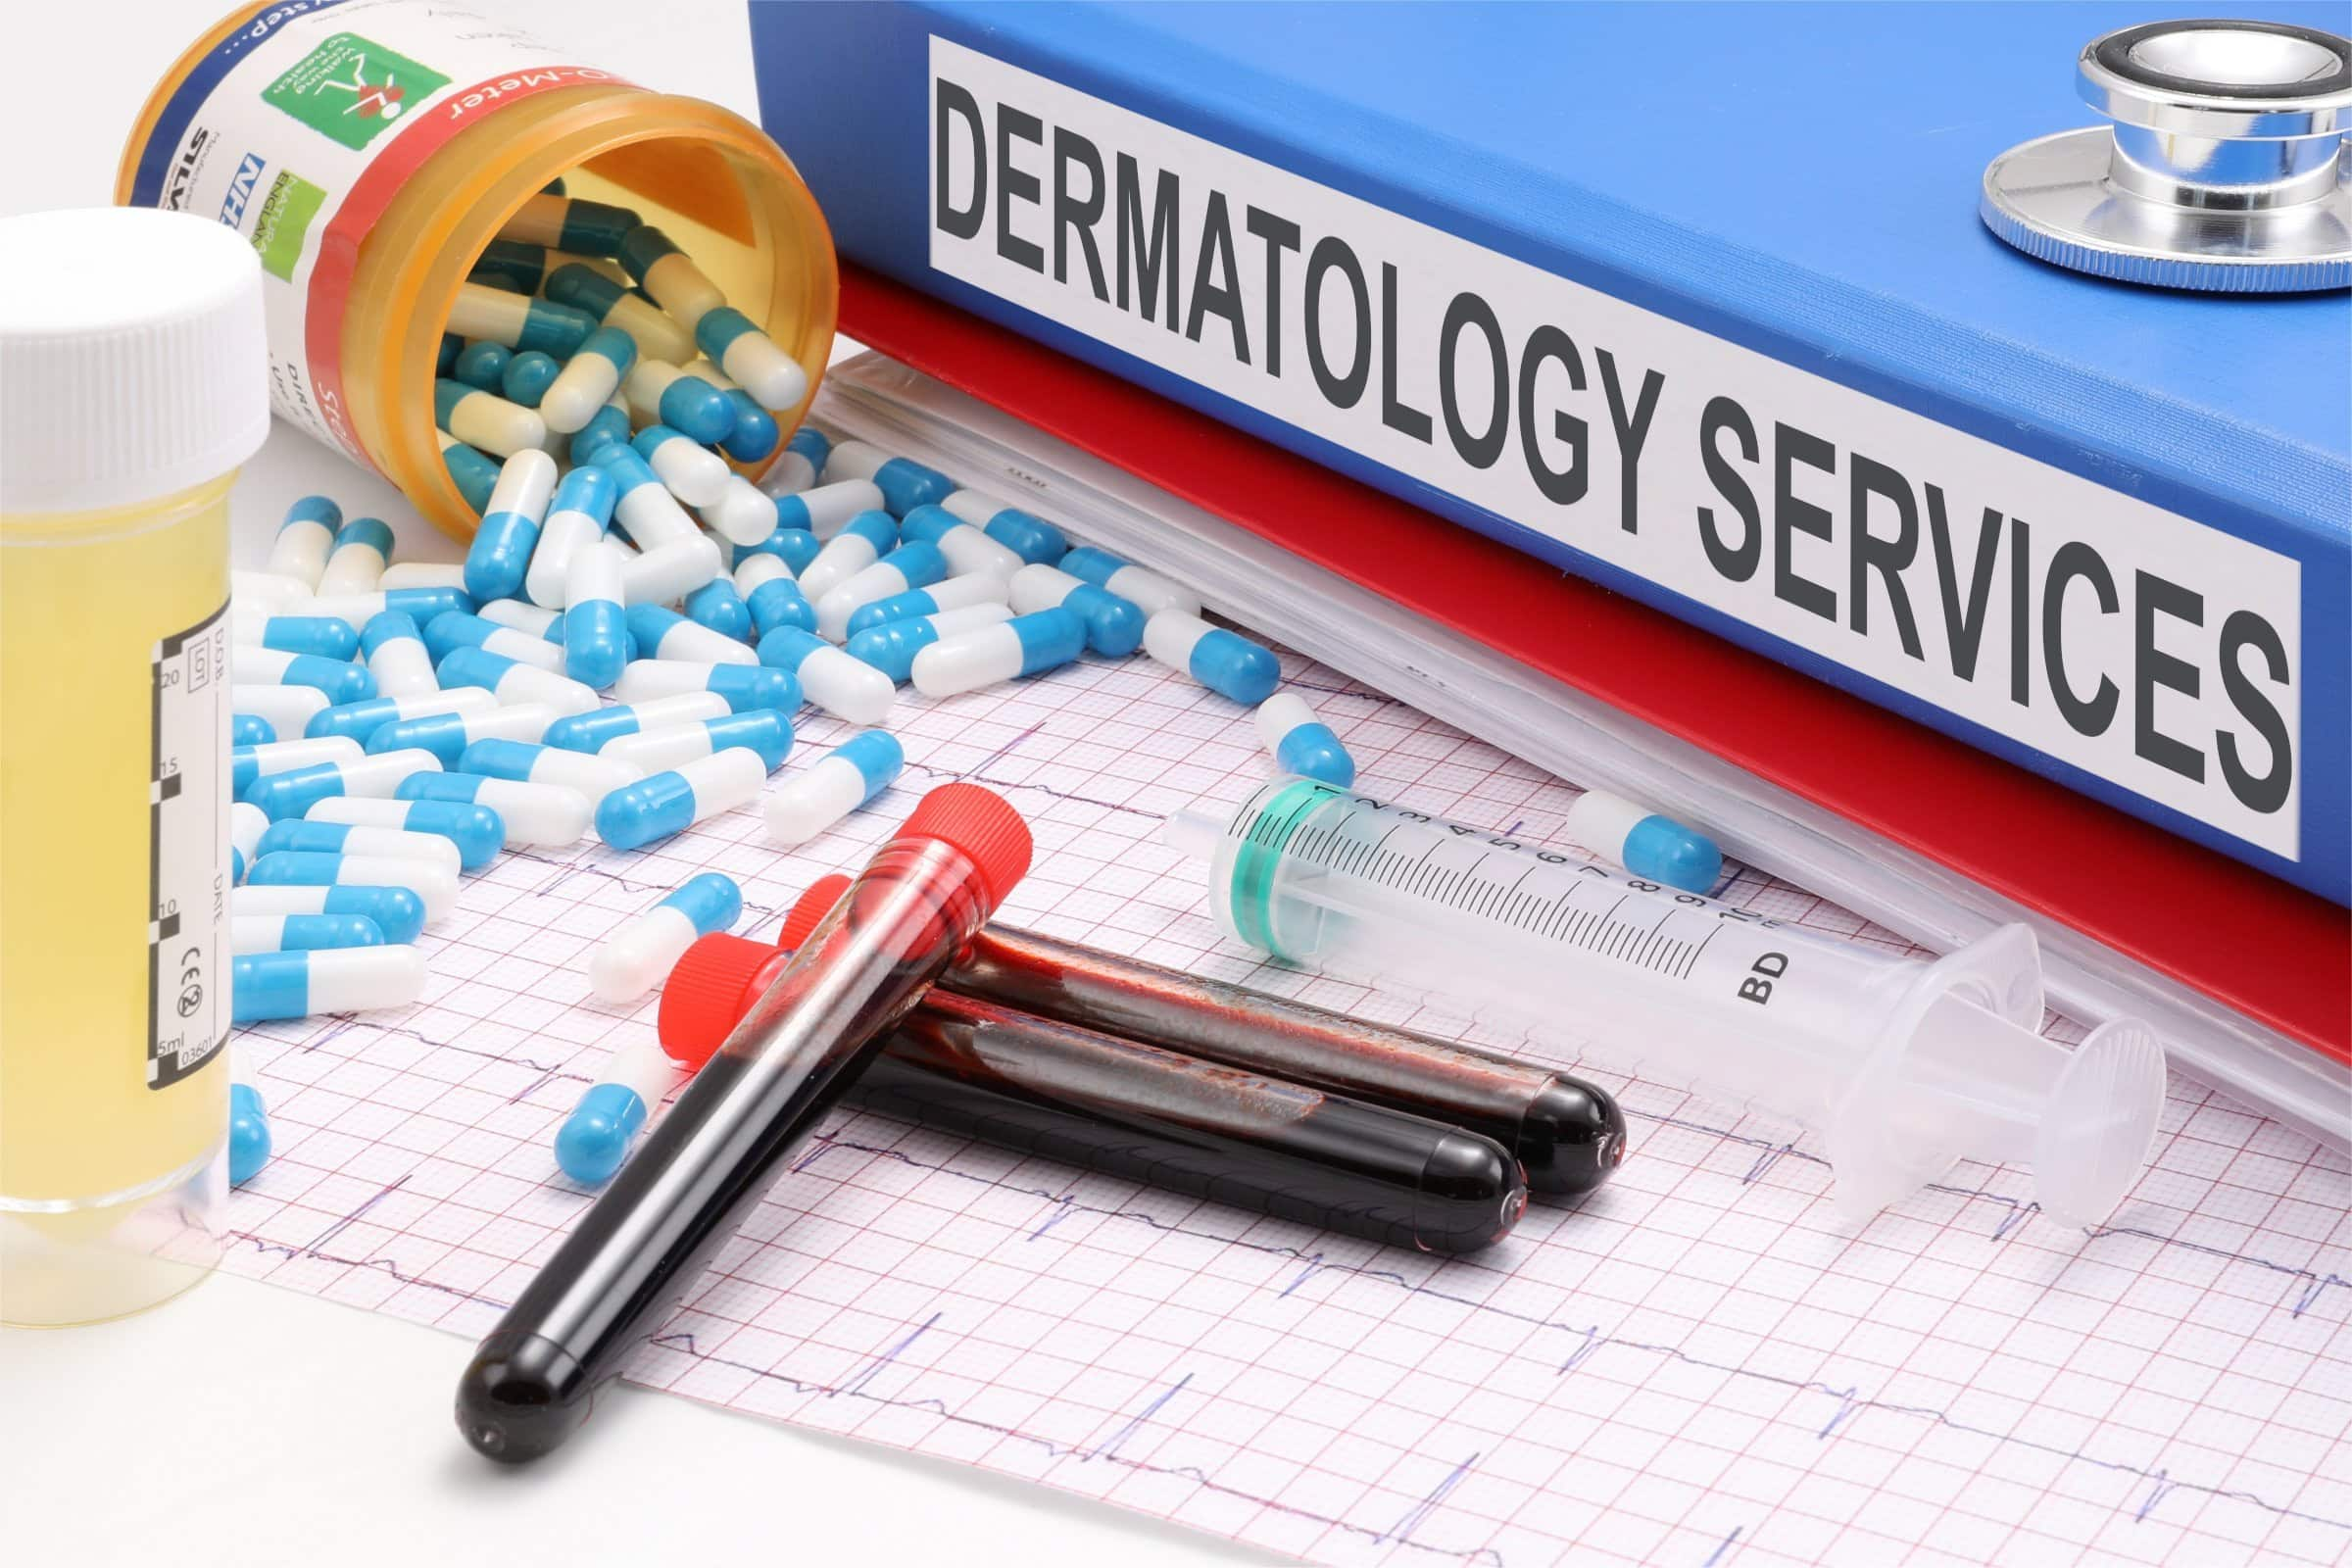 Does Medicaid Cover Dermatology